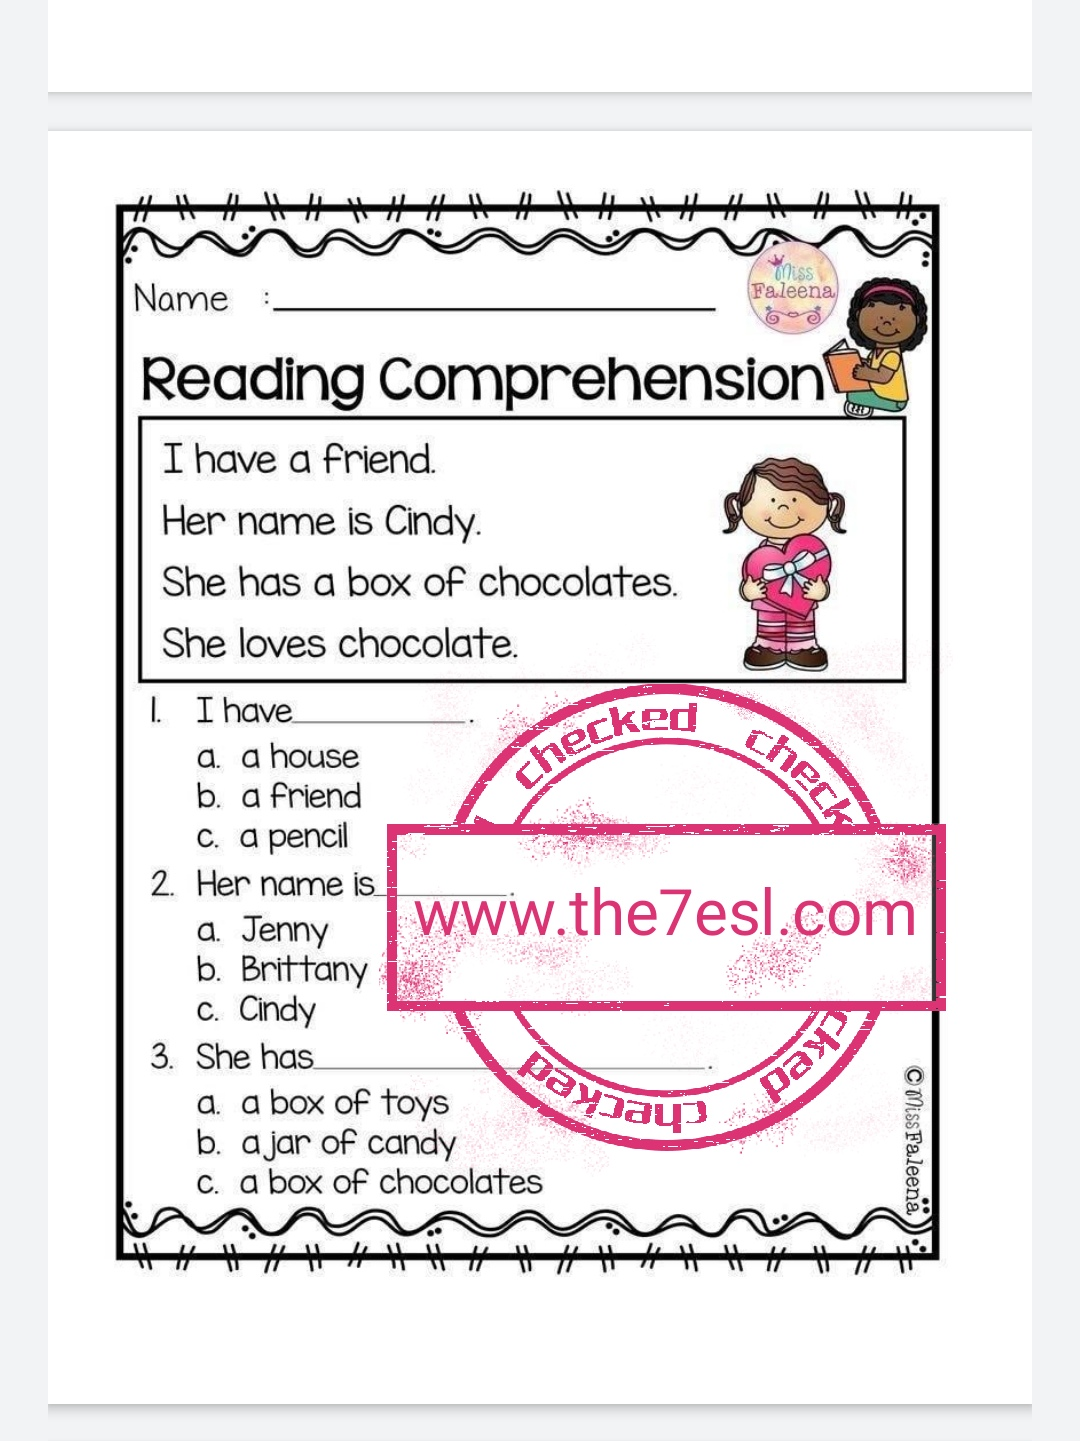 Reading Comprehension Worksheets Grade 2